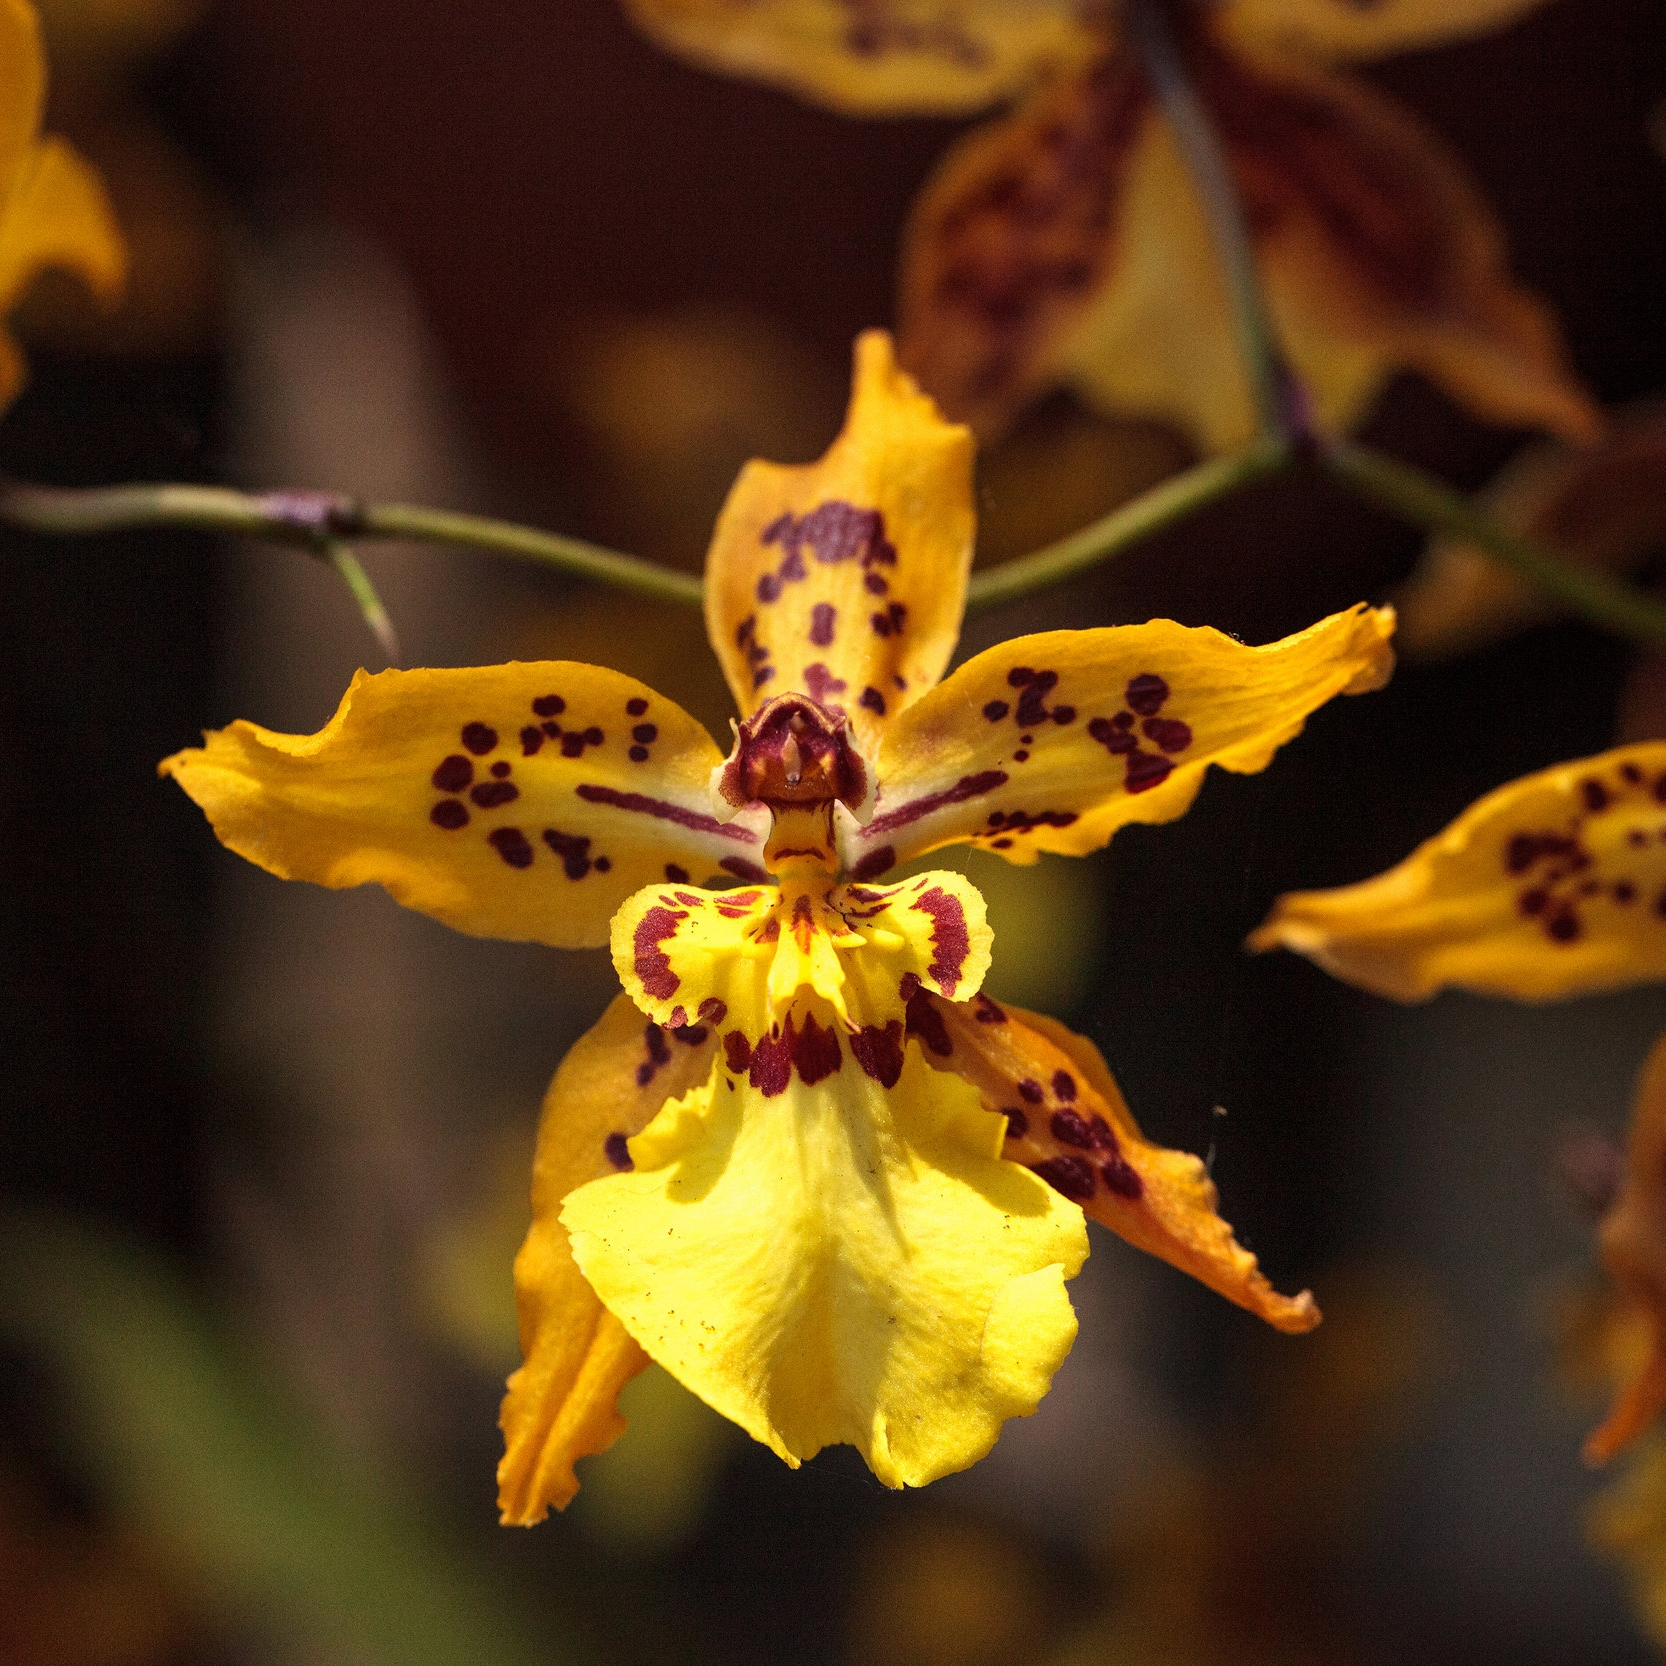 Oncidium (Dancing-Lady)  - Light: Vary from bright to almost full direct depending on the variety. East, south or west windows are ideal.Temperature: 55°-60° at night. 80°-85° at night.Watering: Needs will vary depending on variety. Plant with large, fleshy roots or leaves need less than thin-leaved or thin-rooted. Medium should be halfway dry before watering again.Bloom time: Winter-to-Spring/6 weeks to 2 months. Cut spike back immediately after blooming to redirect energy to plant, new bloom spikes begin on new pseudobulbs.Fertilize: Twice monthly using an orchid fertilizer (30-20-20) if planted in bark substrate. 20-20-20 if planted in moss or on slabs.